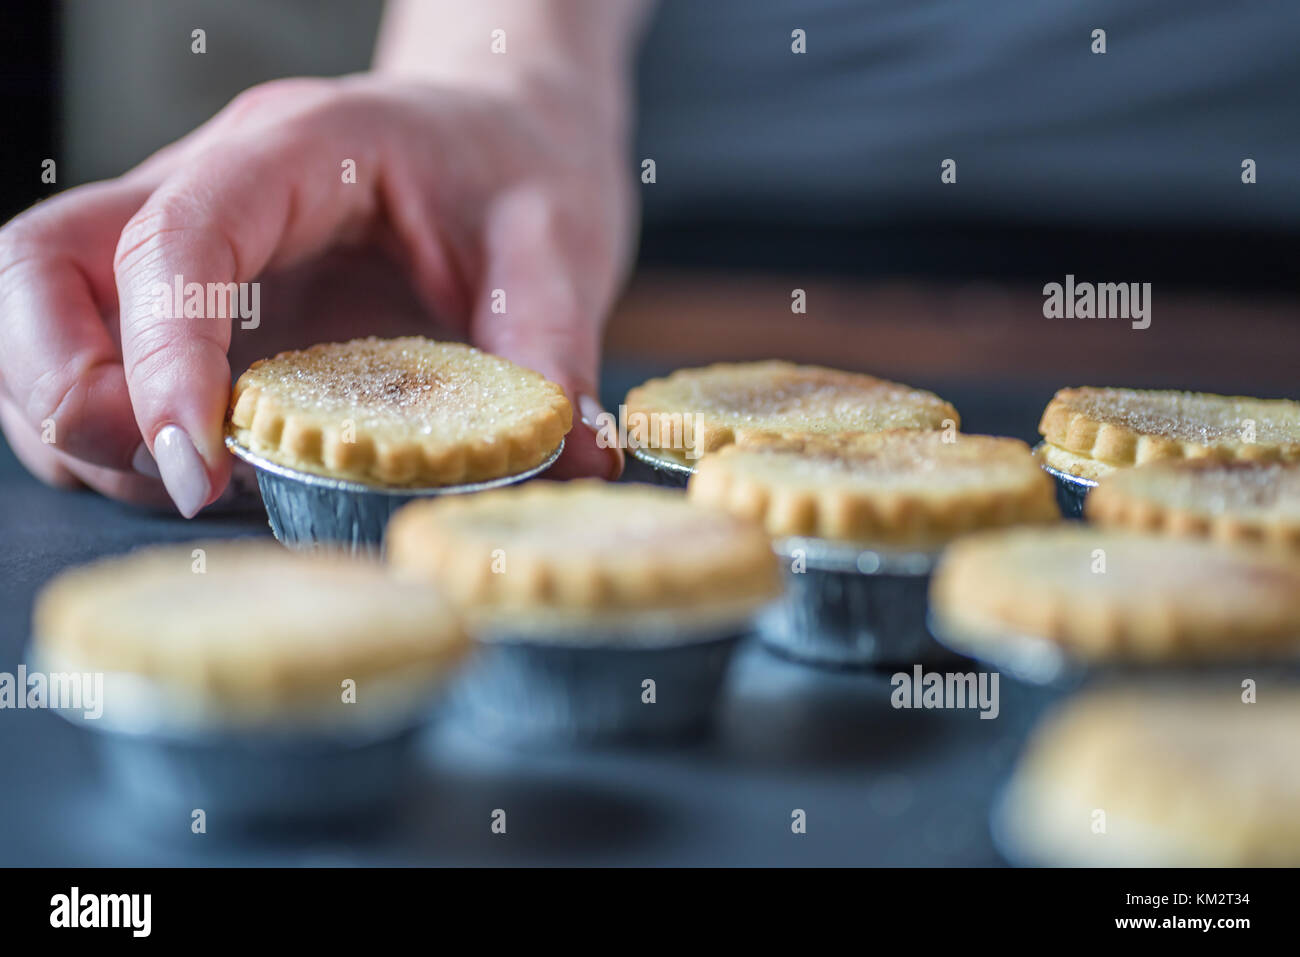 Closeup View Female Hands Holding Christmas Mince Pies. - Stock Image